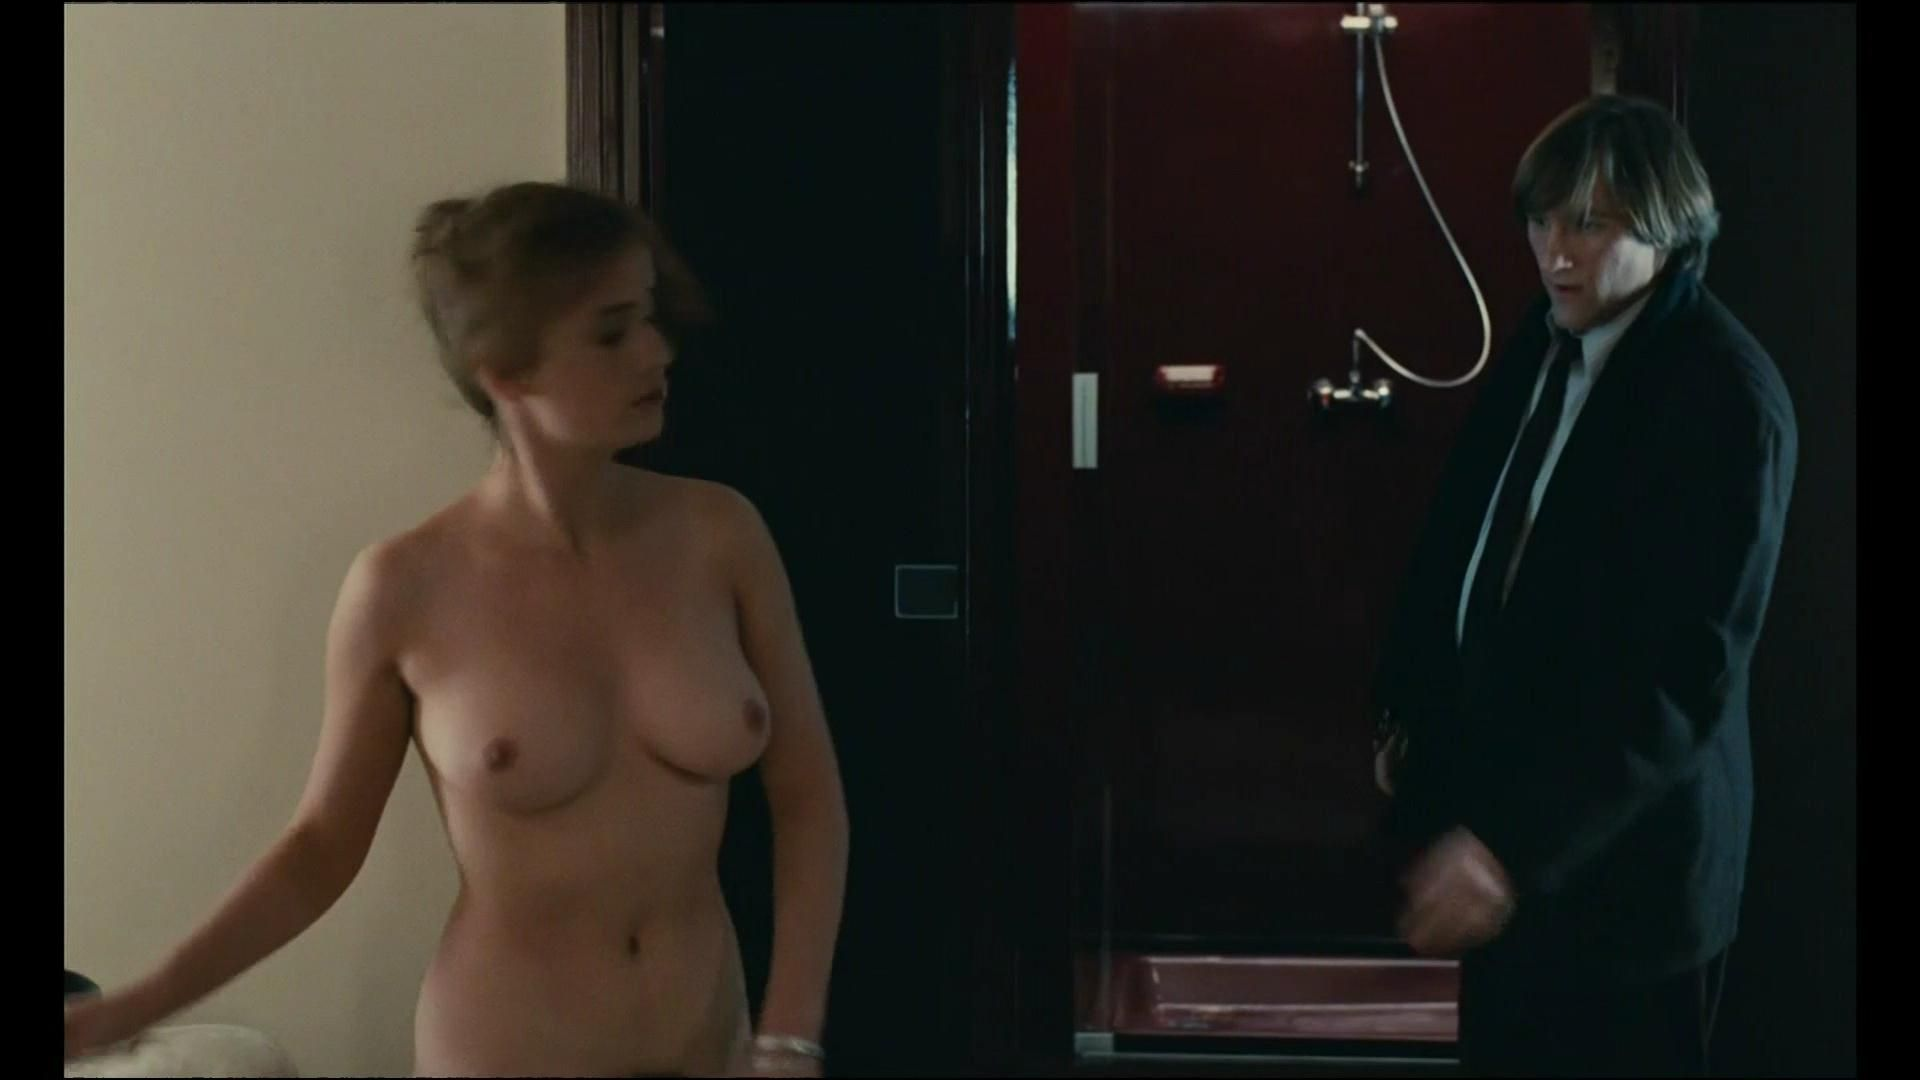 Banned TV Advert Full Frontal Female and Male Nudity